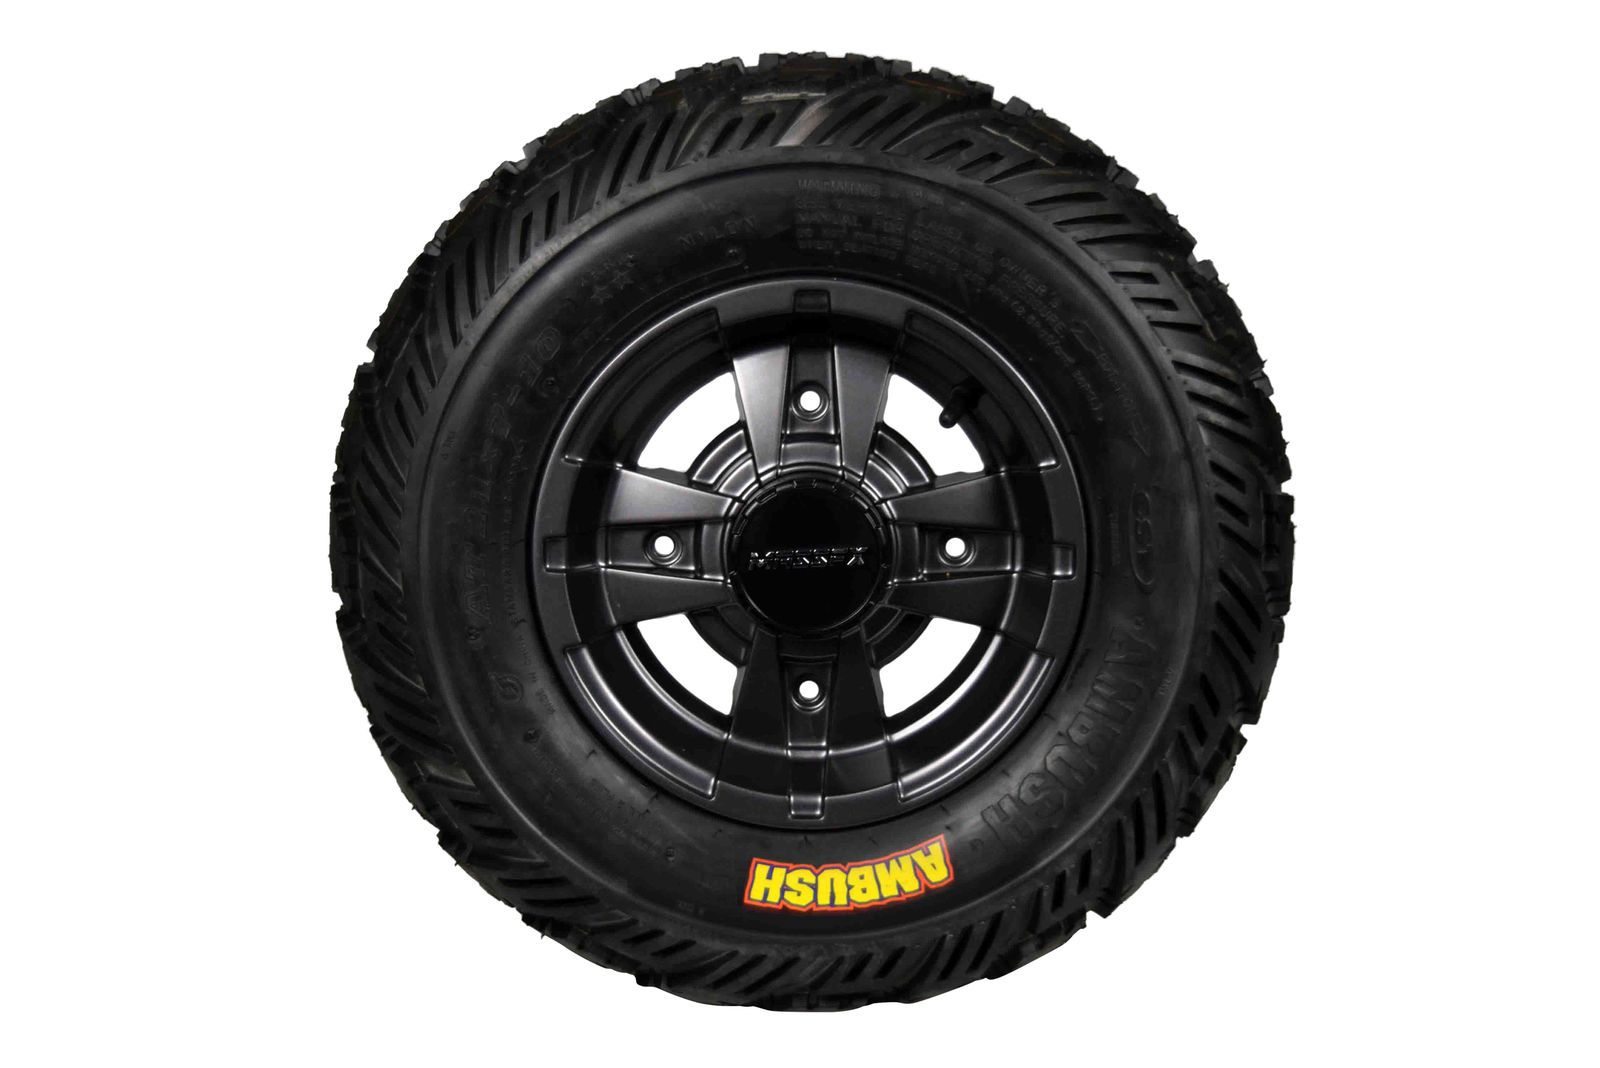 Ambush-21x7-10-20x11-9-Tires-w-MASSFX-Gunmetal-Rims-10x5-4-156-9x8-4-115-Wheels-image-3